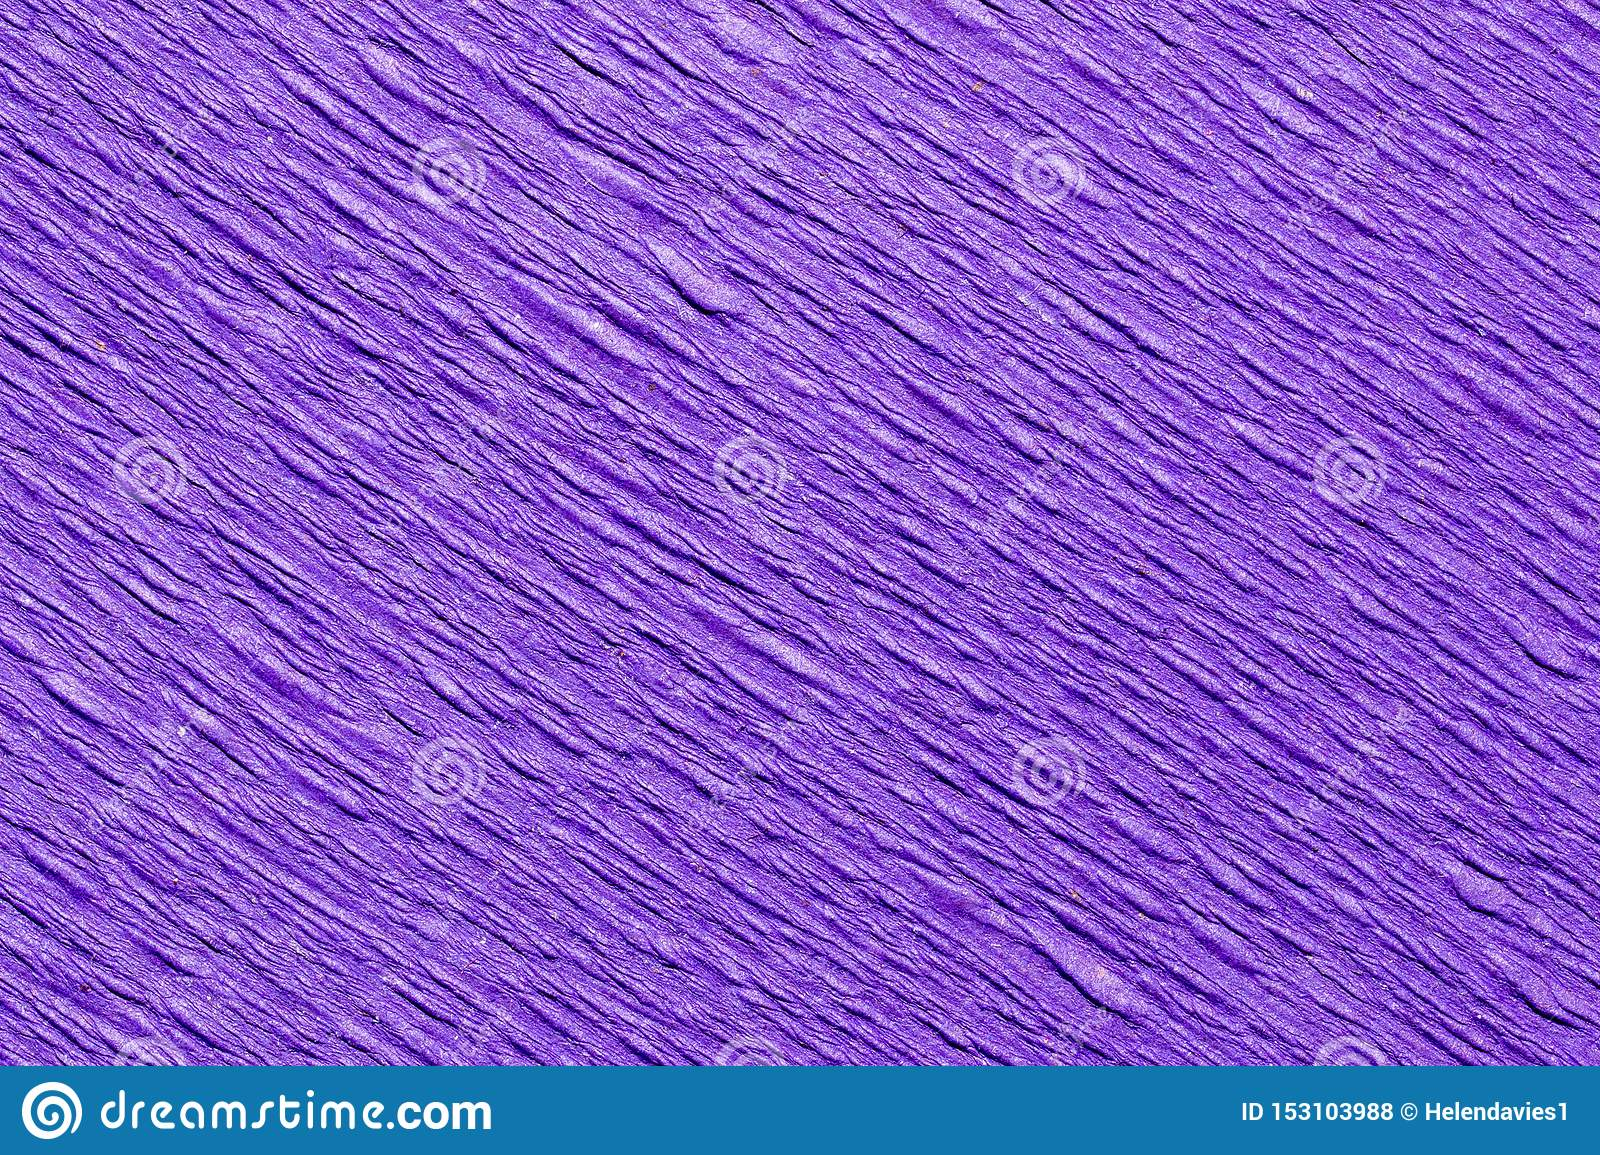 Abstract textured background of purple crepe paper